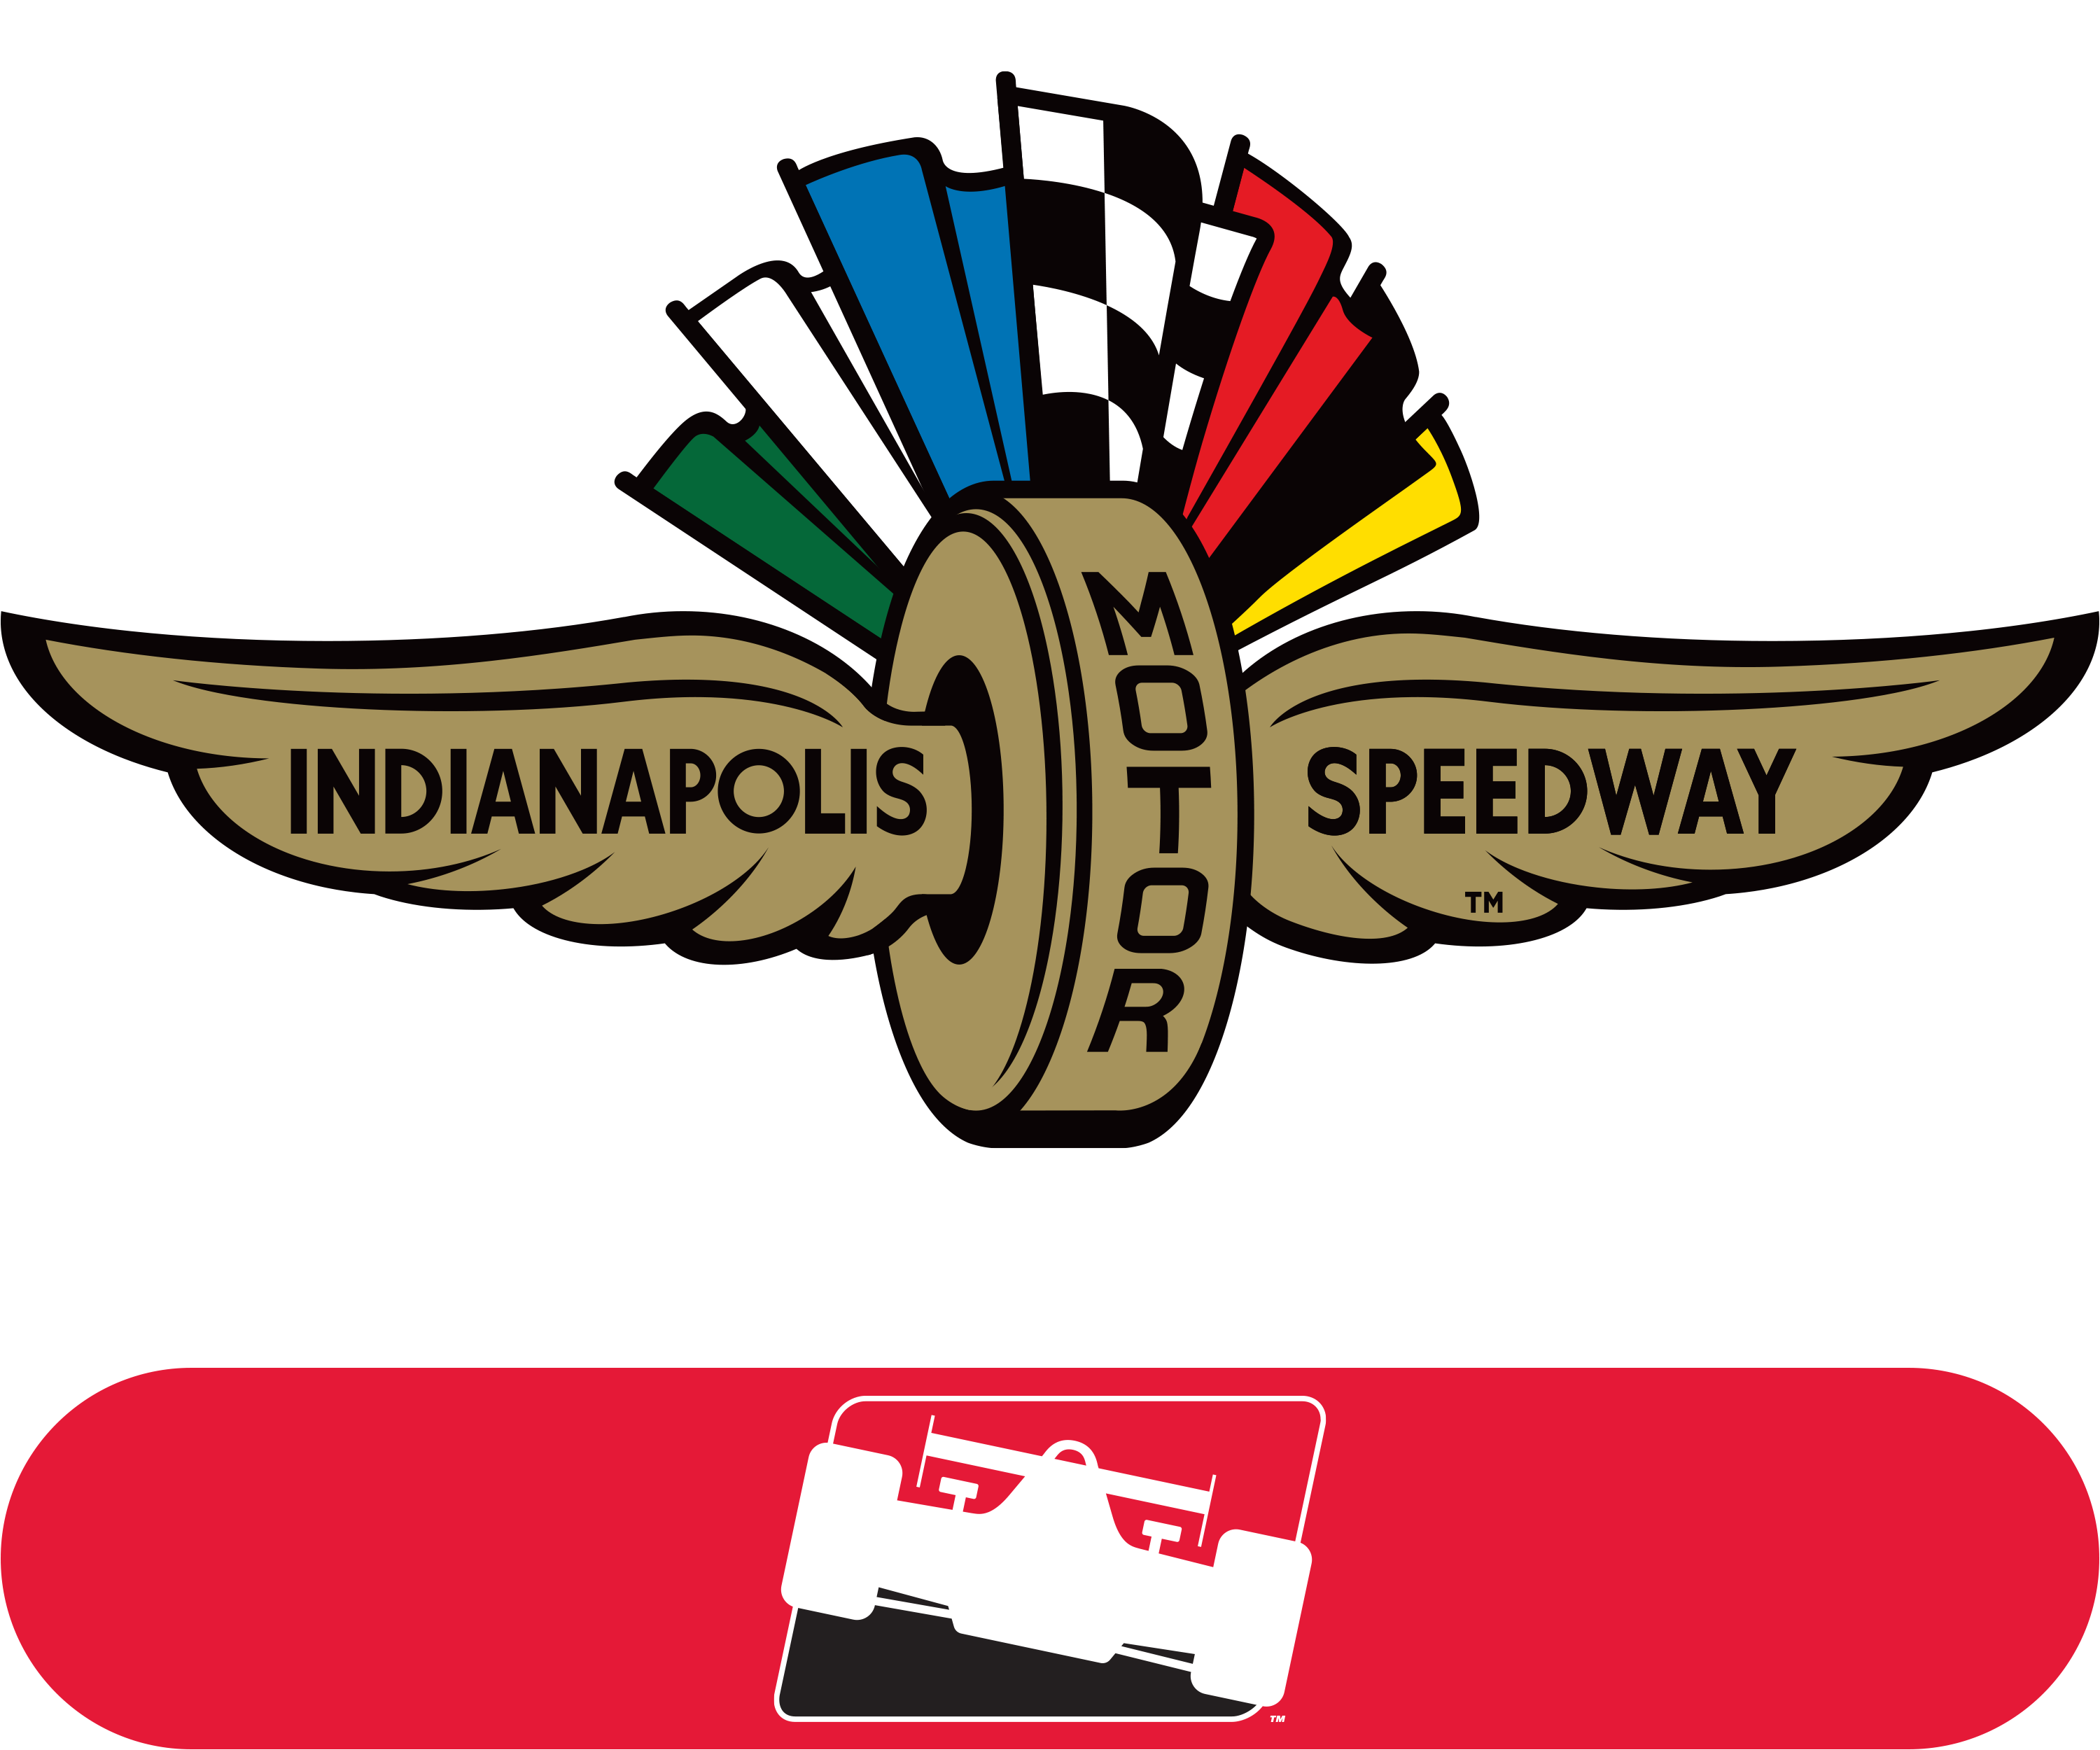 Indy race car clipart png free stock Indy 500 – Racing Electronics png free stock